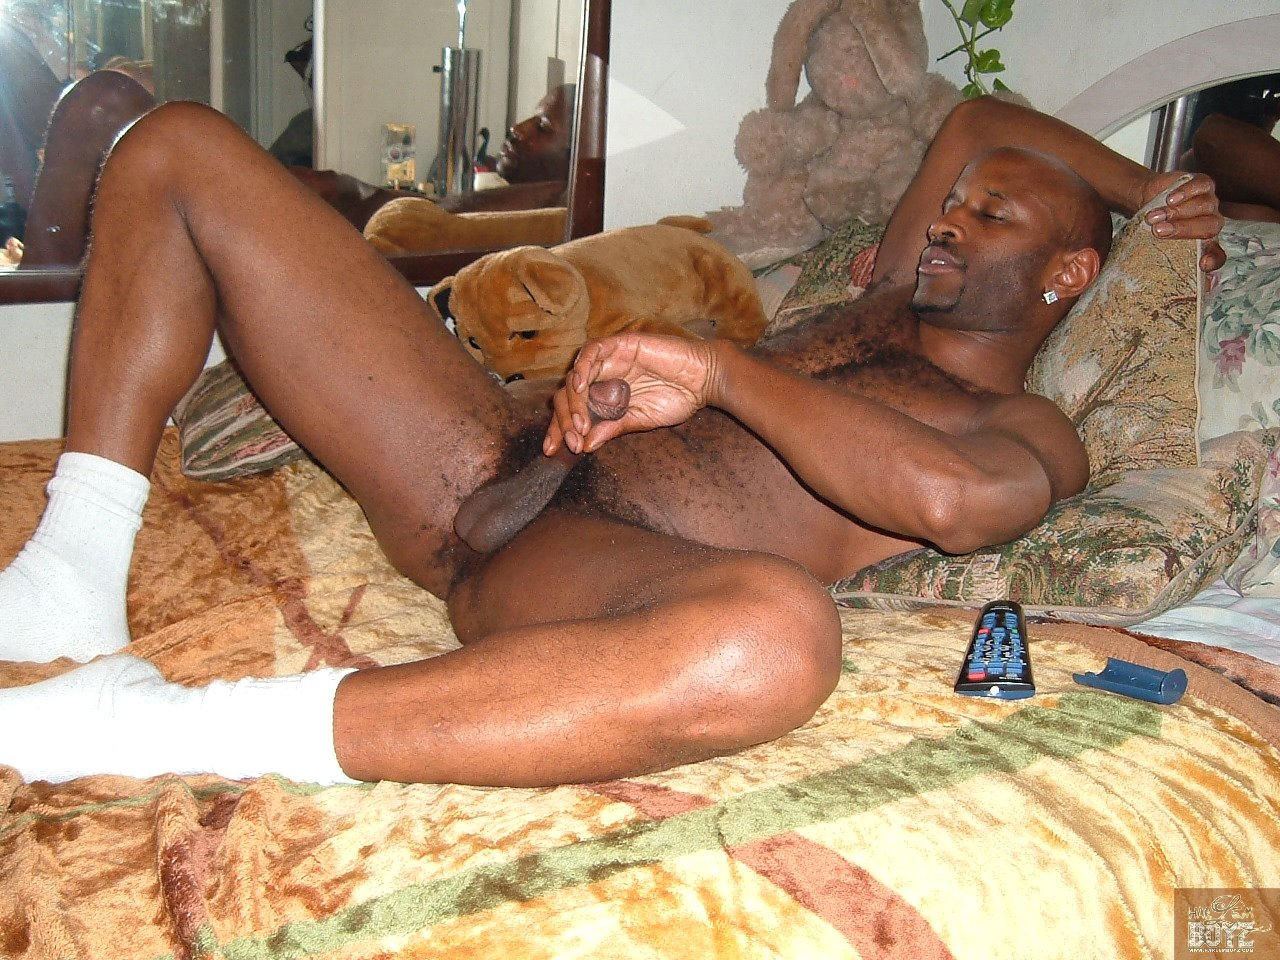 Gay - 15733 videos - Tasty Blacks Free Ebony Black Sex